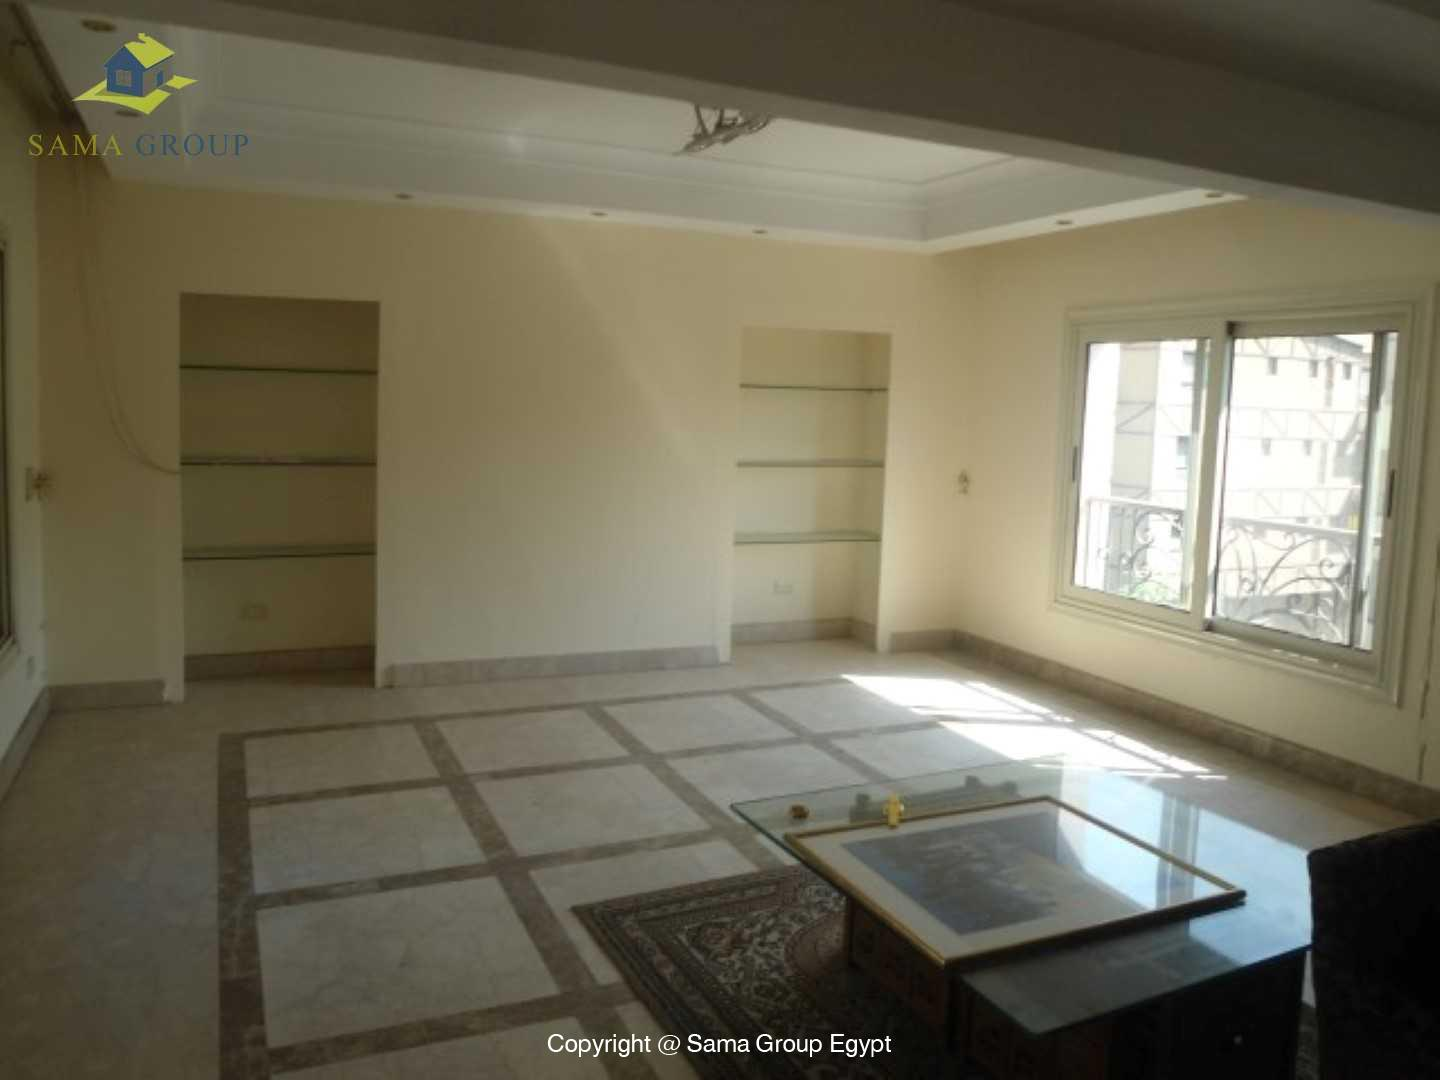 Semi Furnished Apartment For Rent In Maadi,Semi furnished,Apartment NO #2